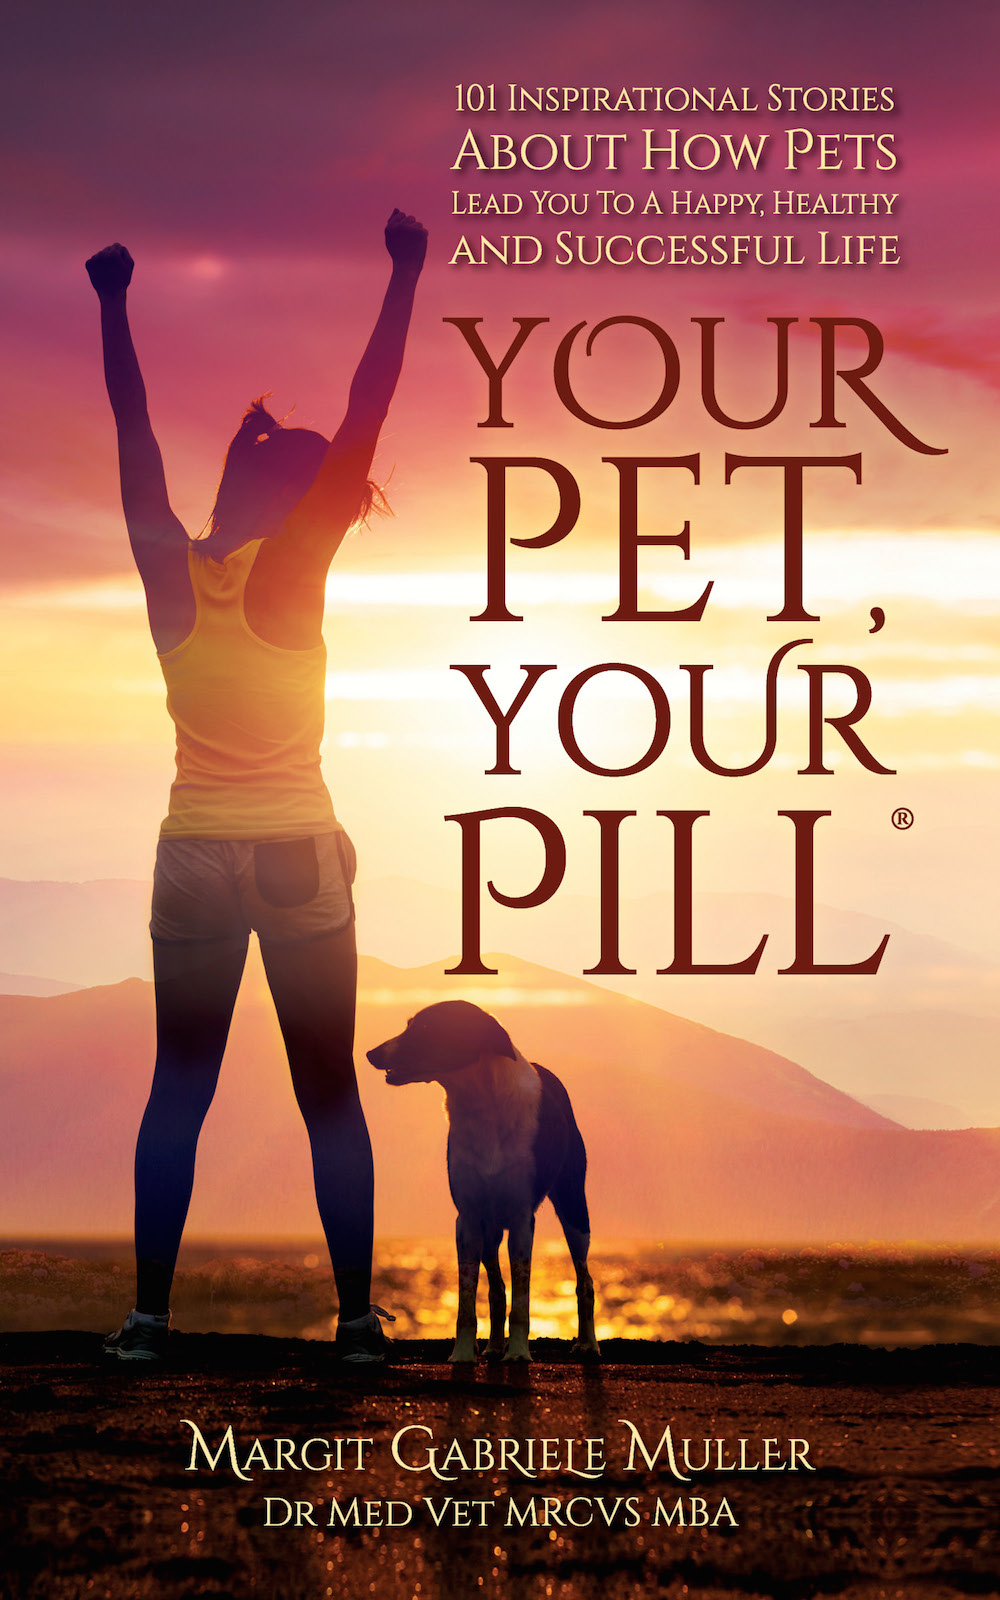 Your Pet Your Pill book cover